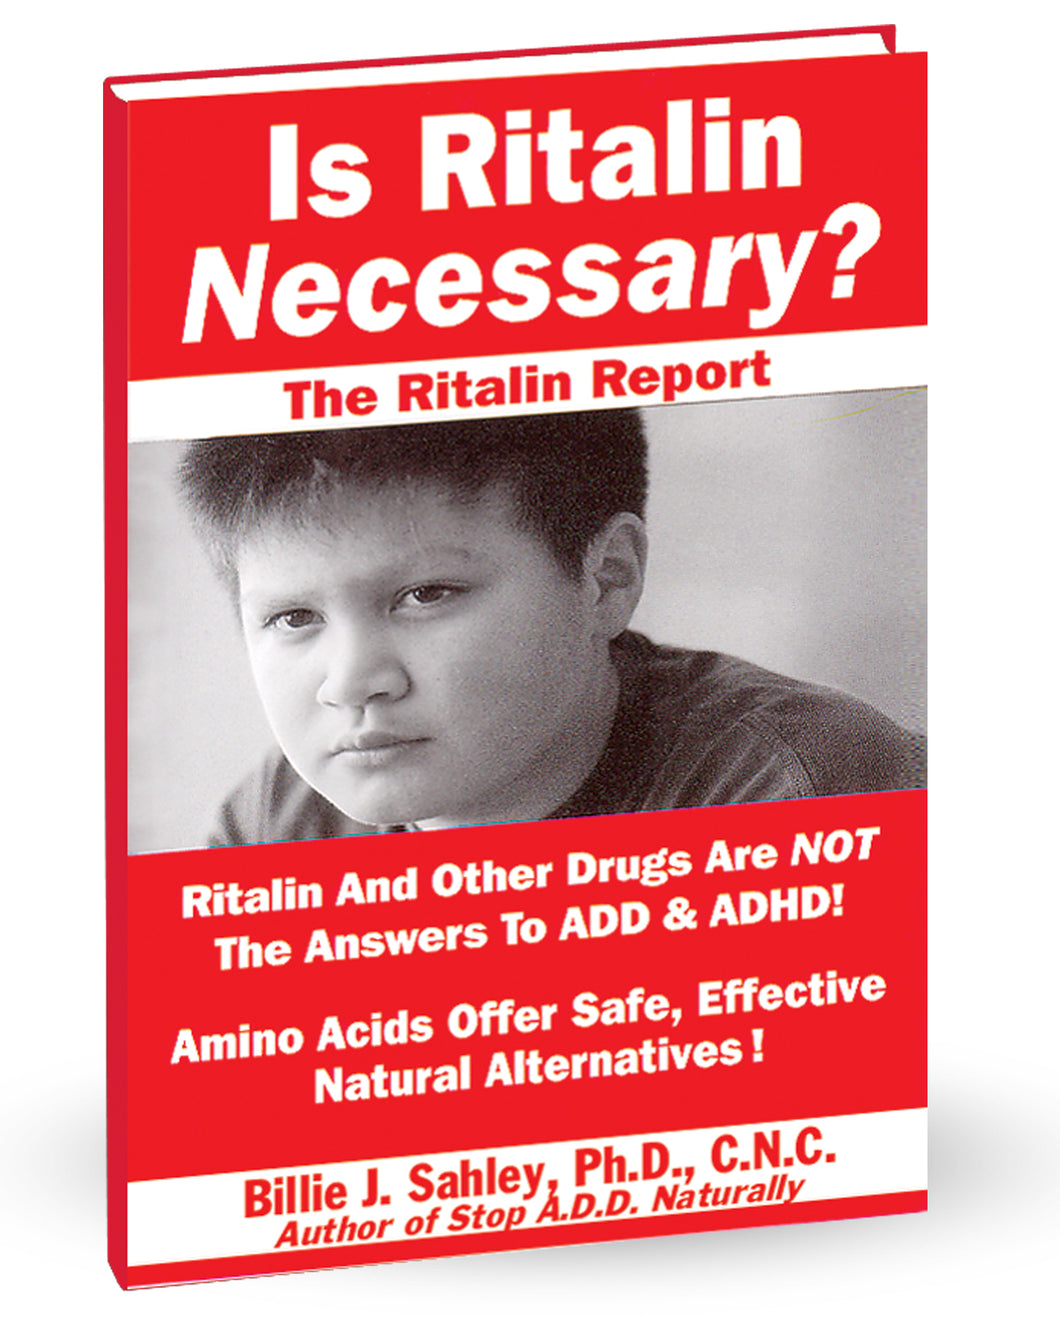 Is Ritalin Necessary? The Ritalin Report. by Dr. Billie J. Sahley, PhD, C.N.C.